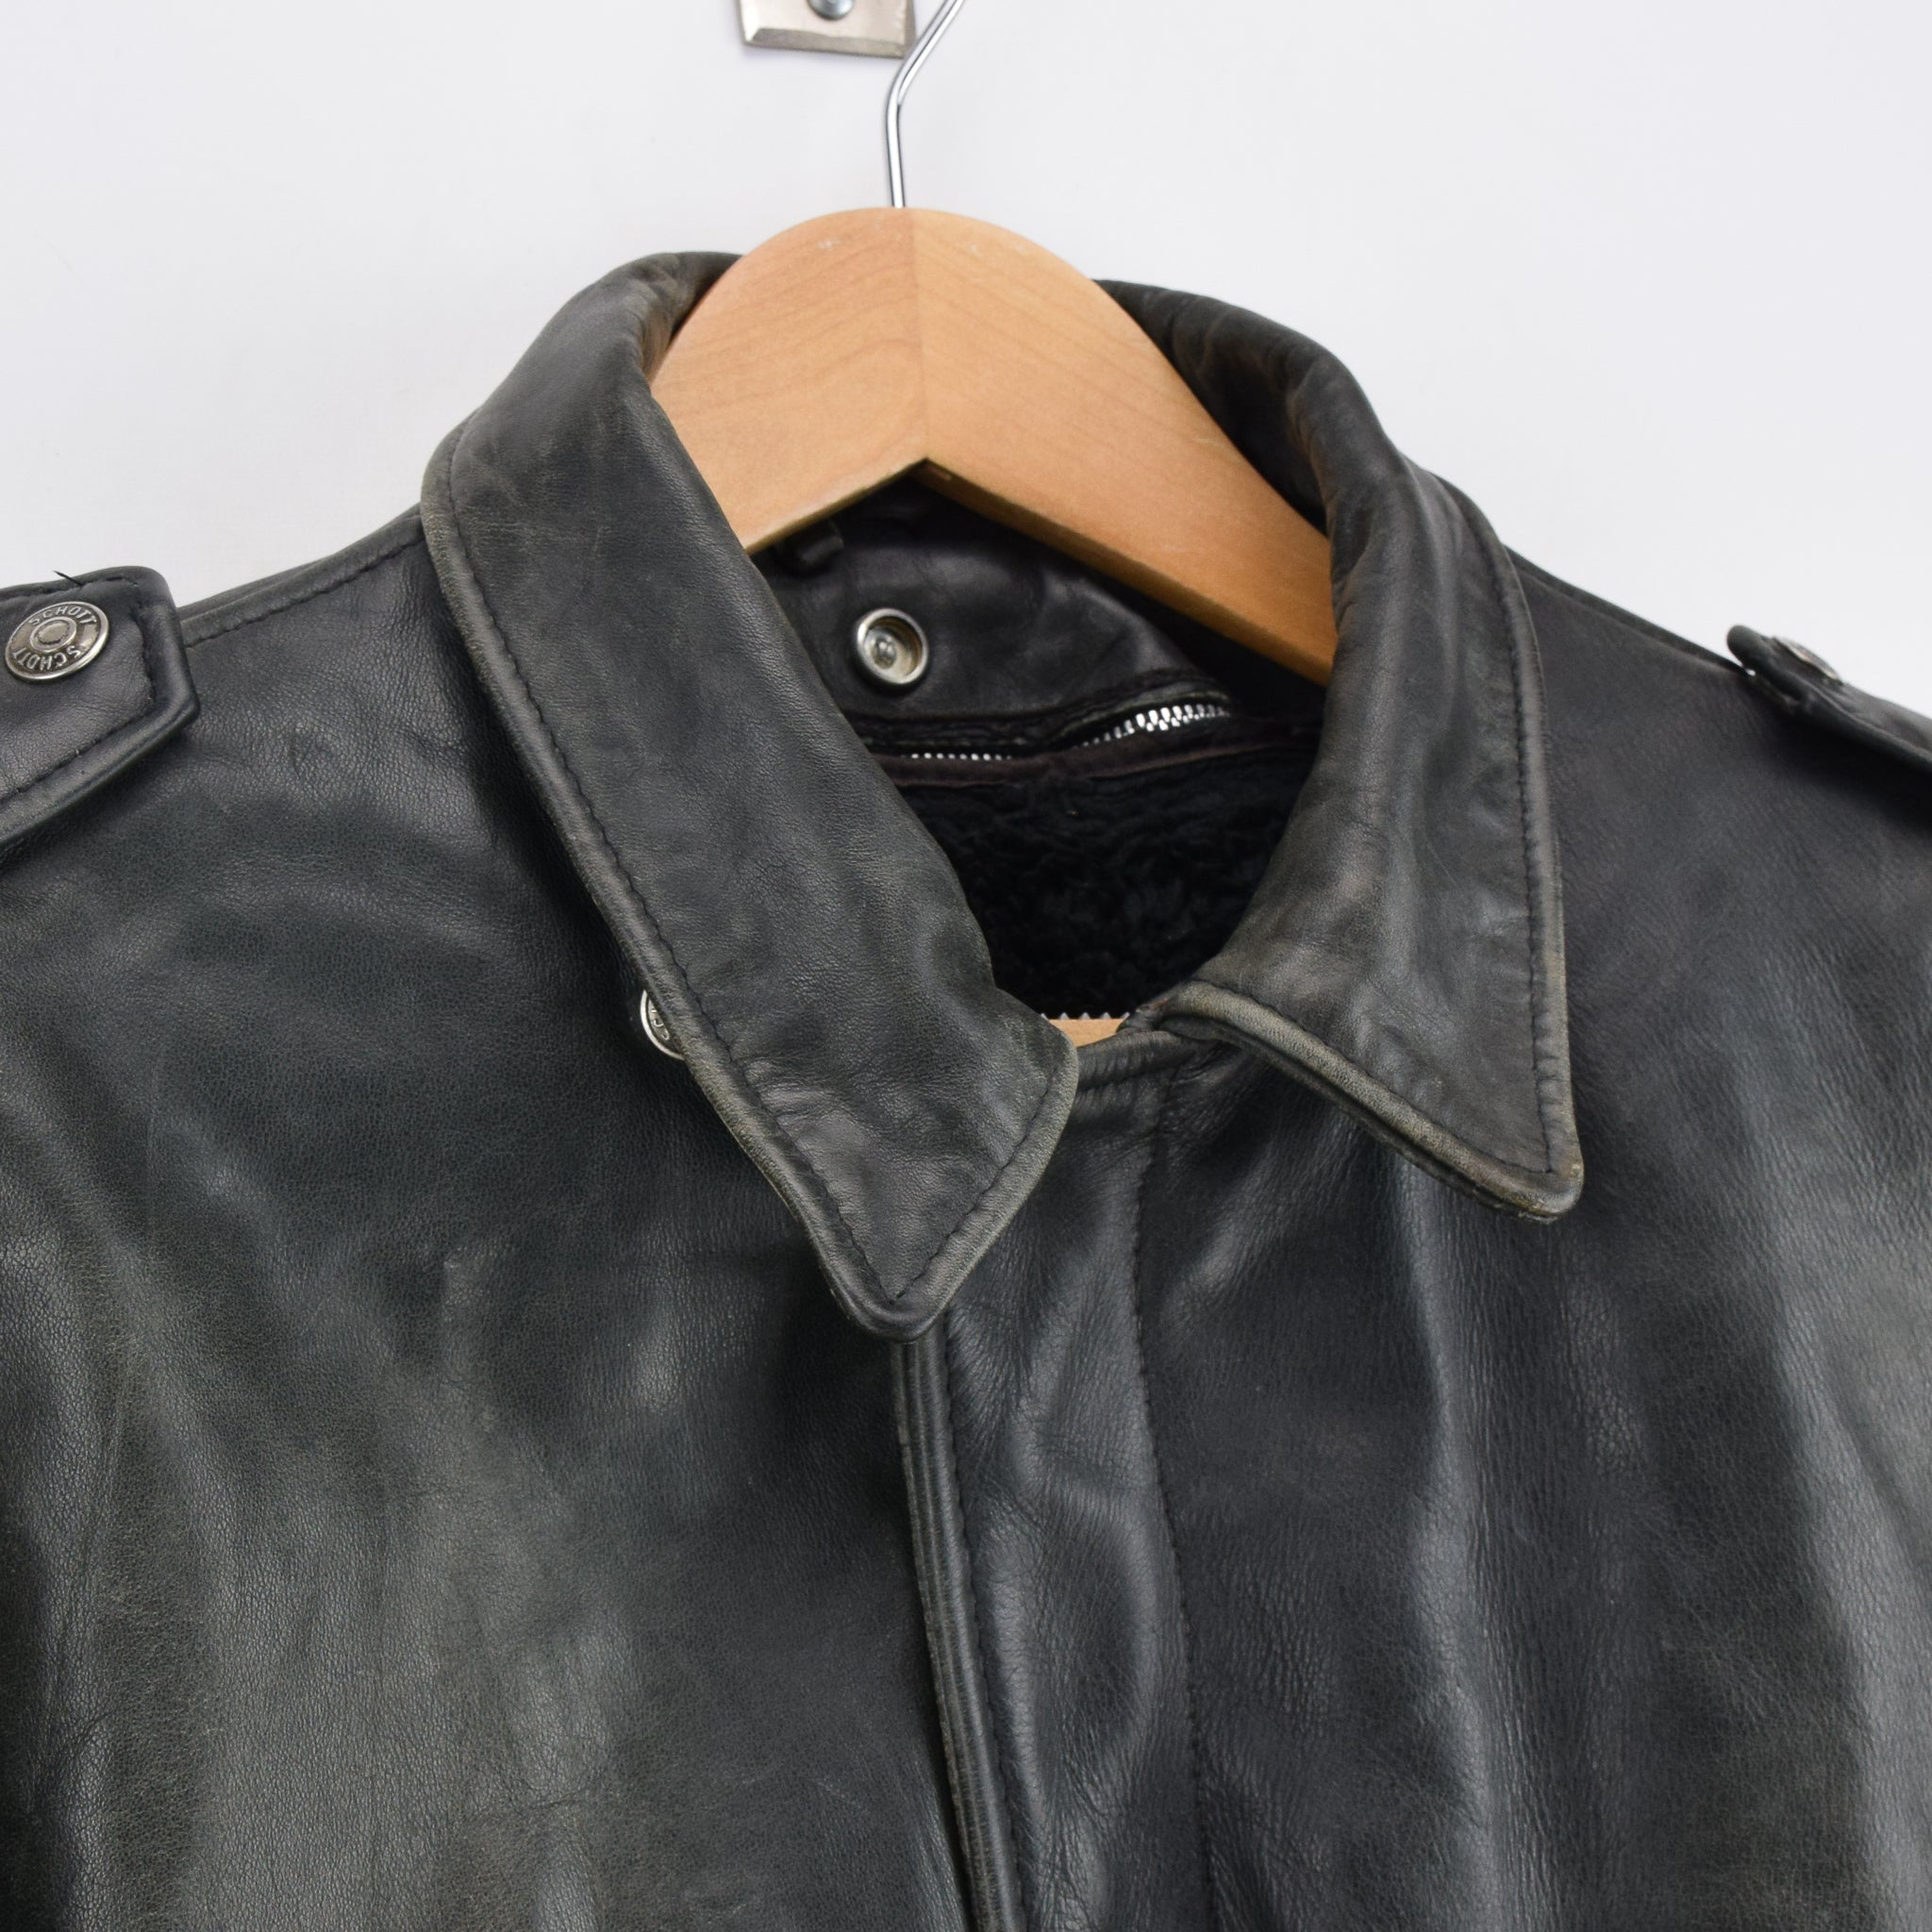 Vintage Schott A-2 Black Distressed Leather Flight Bomber Jacket Made in USA L collar